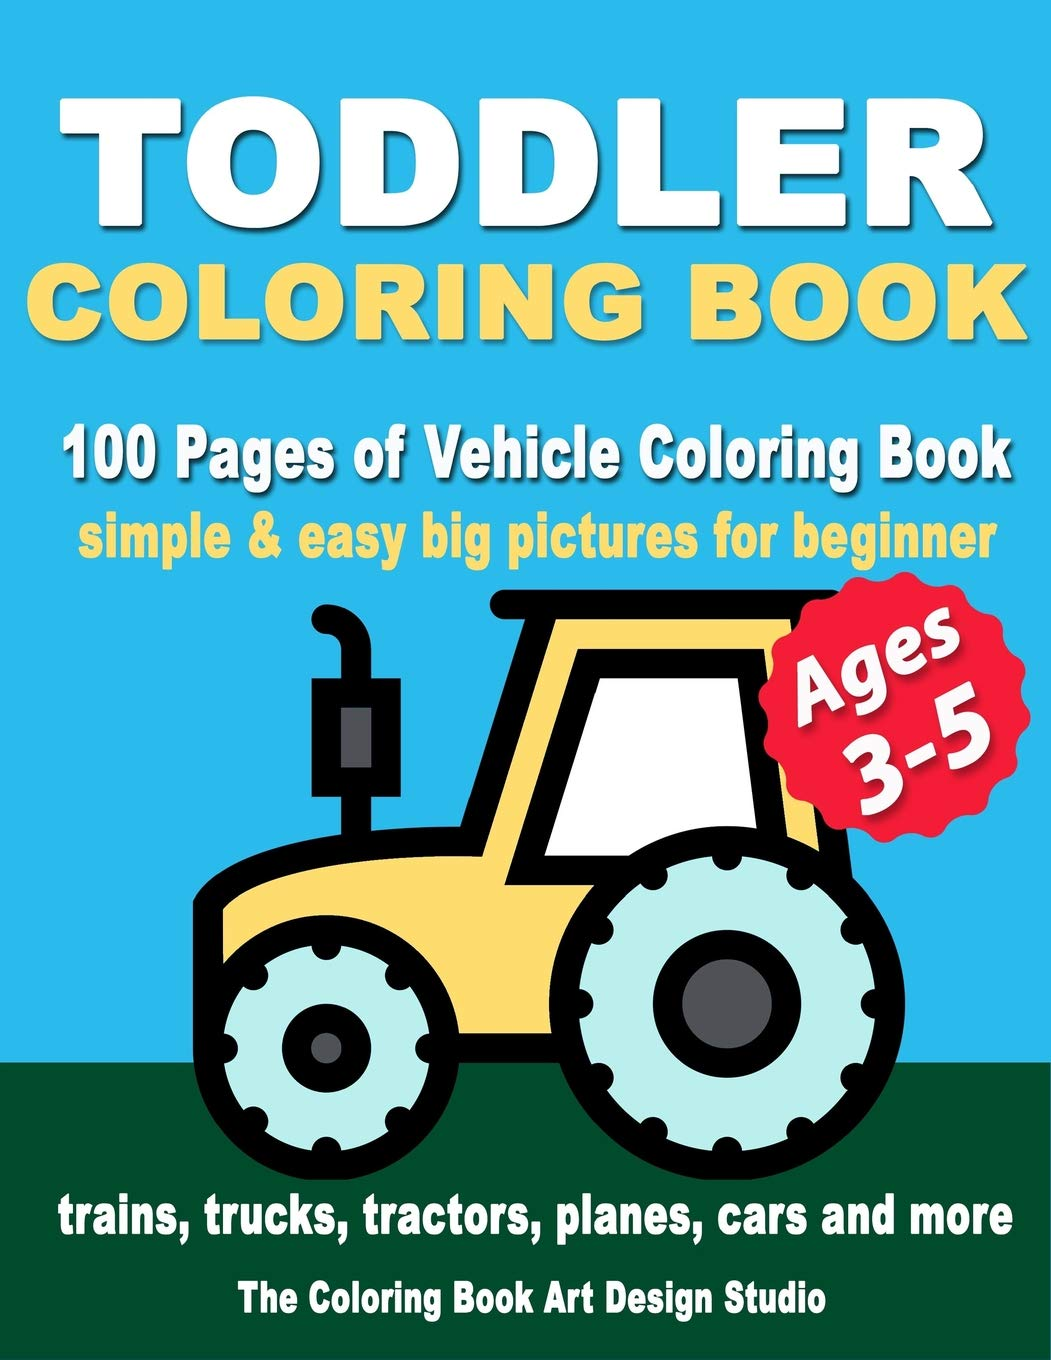 Print out Tractor Coloring Pages - Free Printable Coloring Pages For Kids | 1360x1051